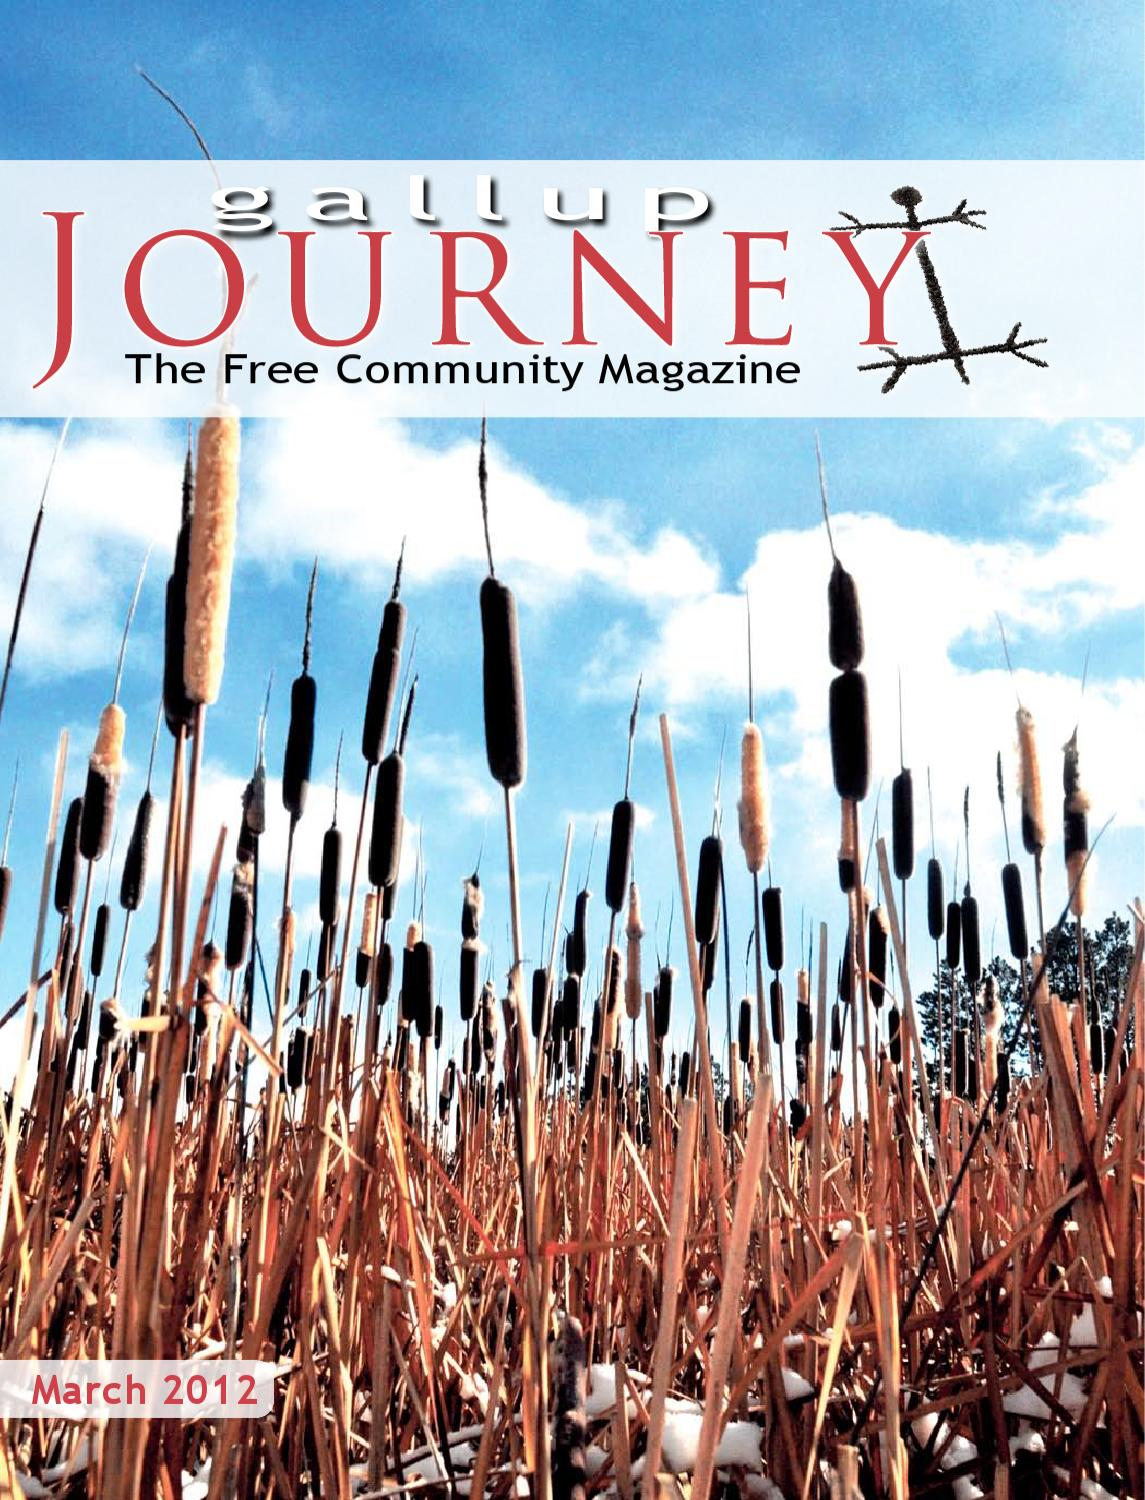 Gallup Journey March 2012 By Issuu Schematic Muscle Stimulator Or Zapper Tens Isaac Blog